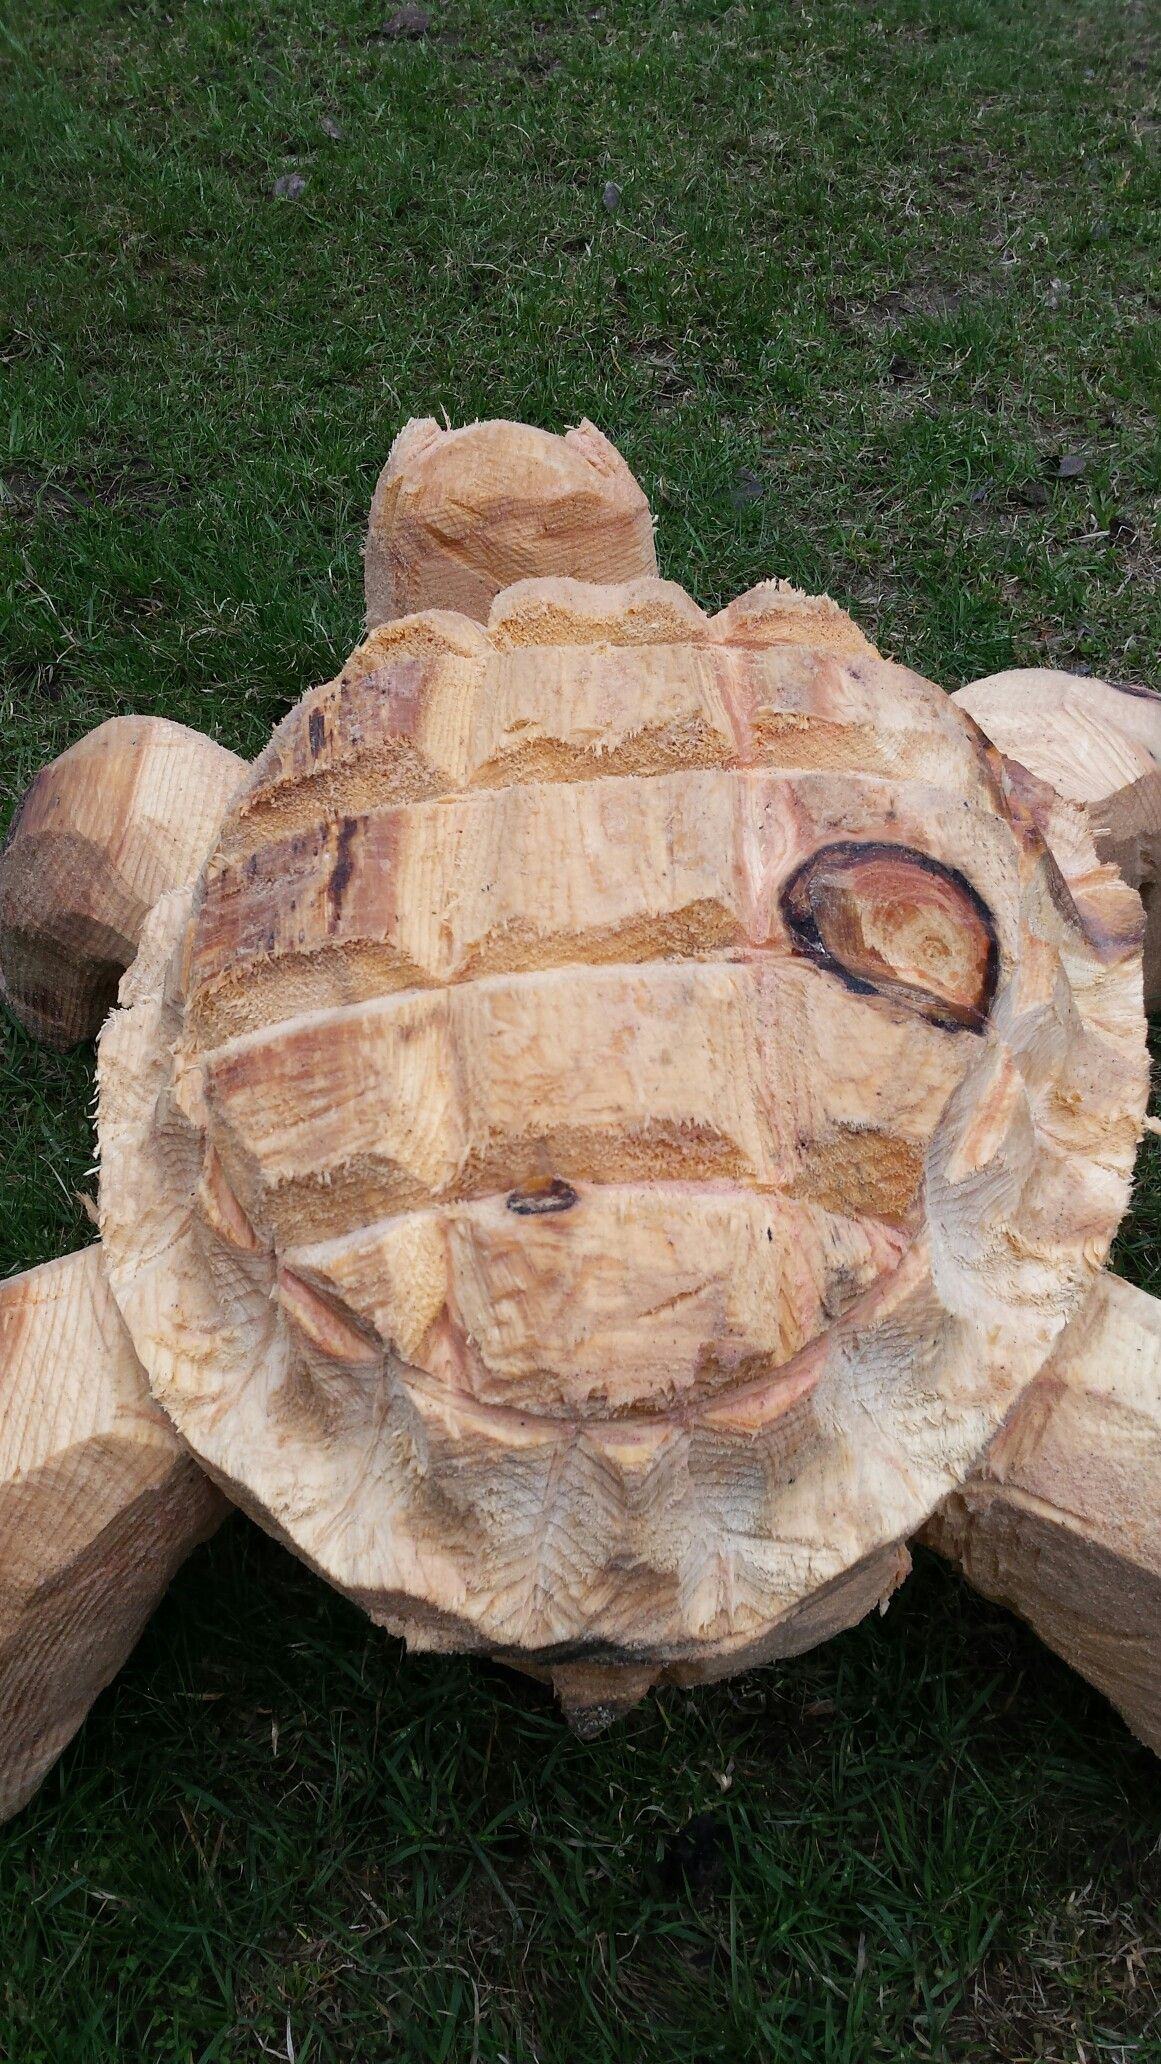 Chainsaw Carved Turtle Carvell Saw Creations On Facebook Chainsaw Wood Carving Chainsaw Carving Wooden Sculpture